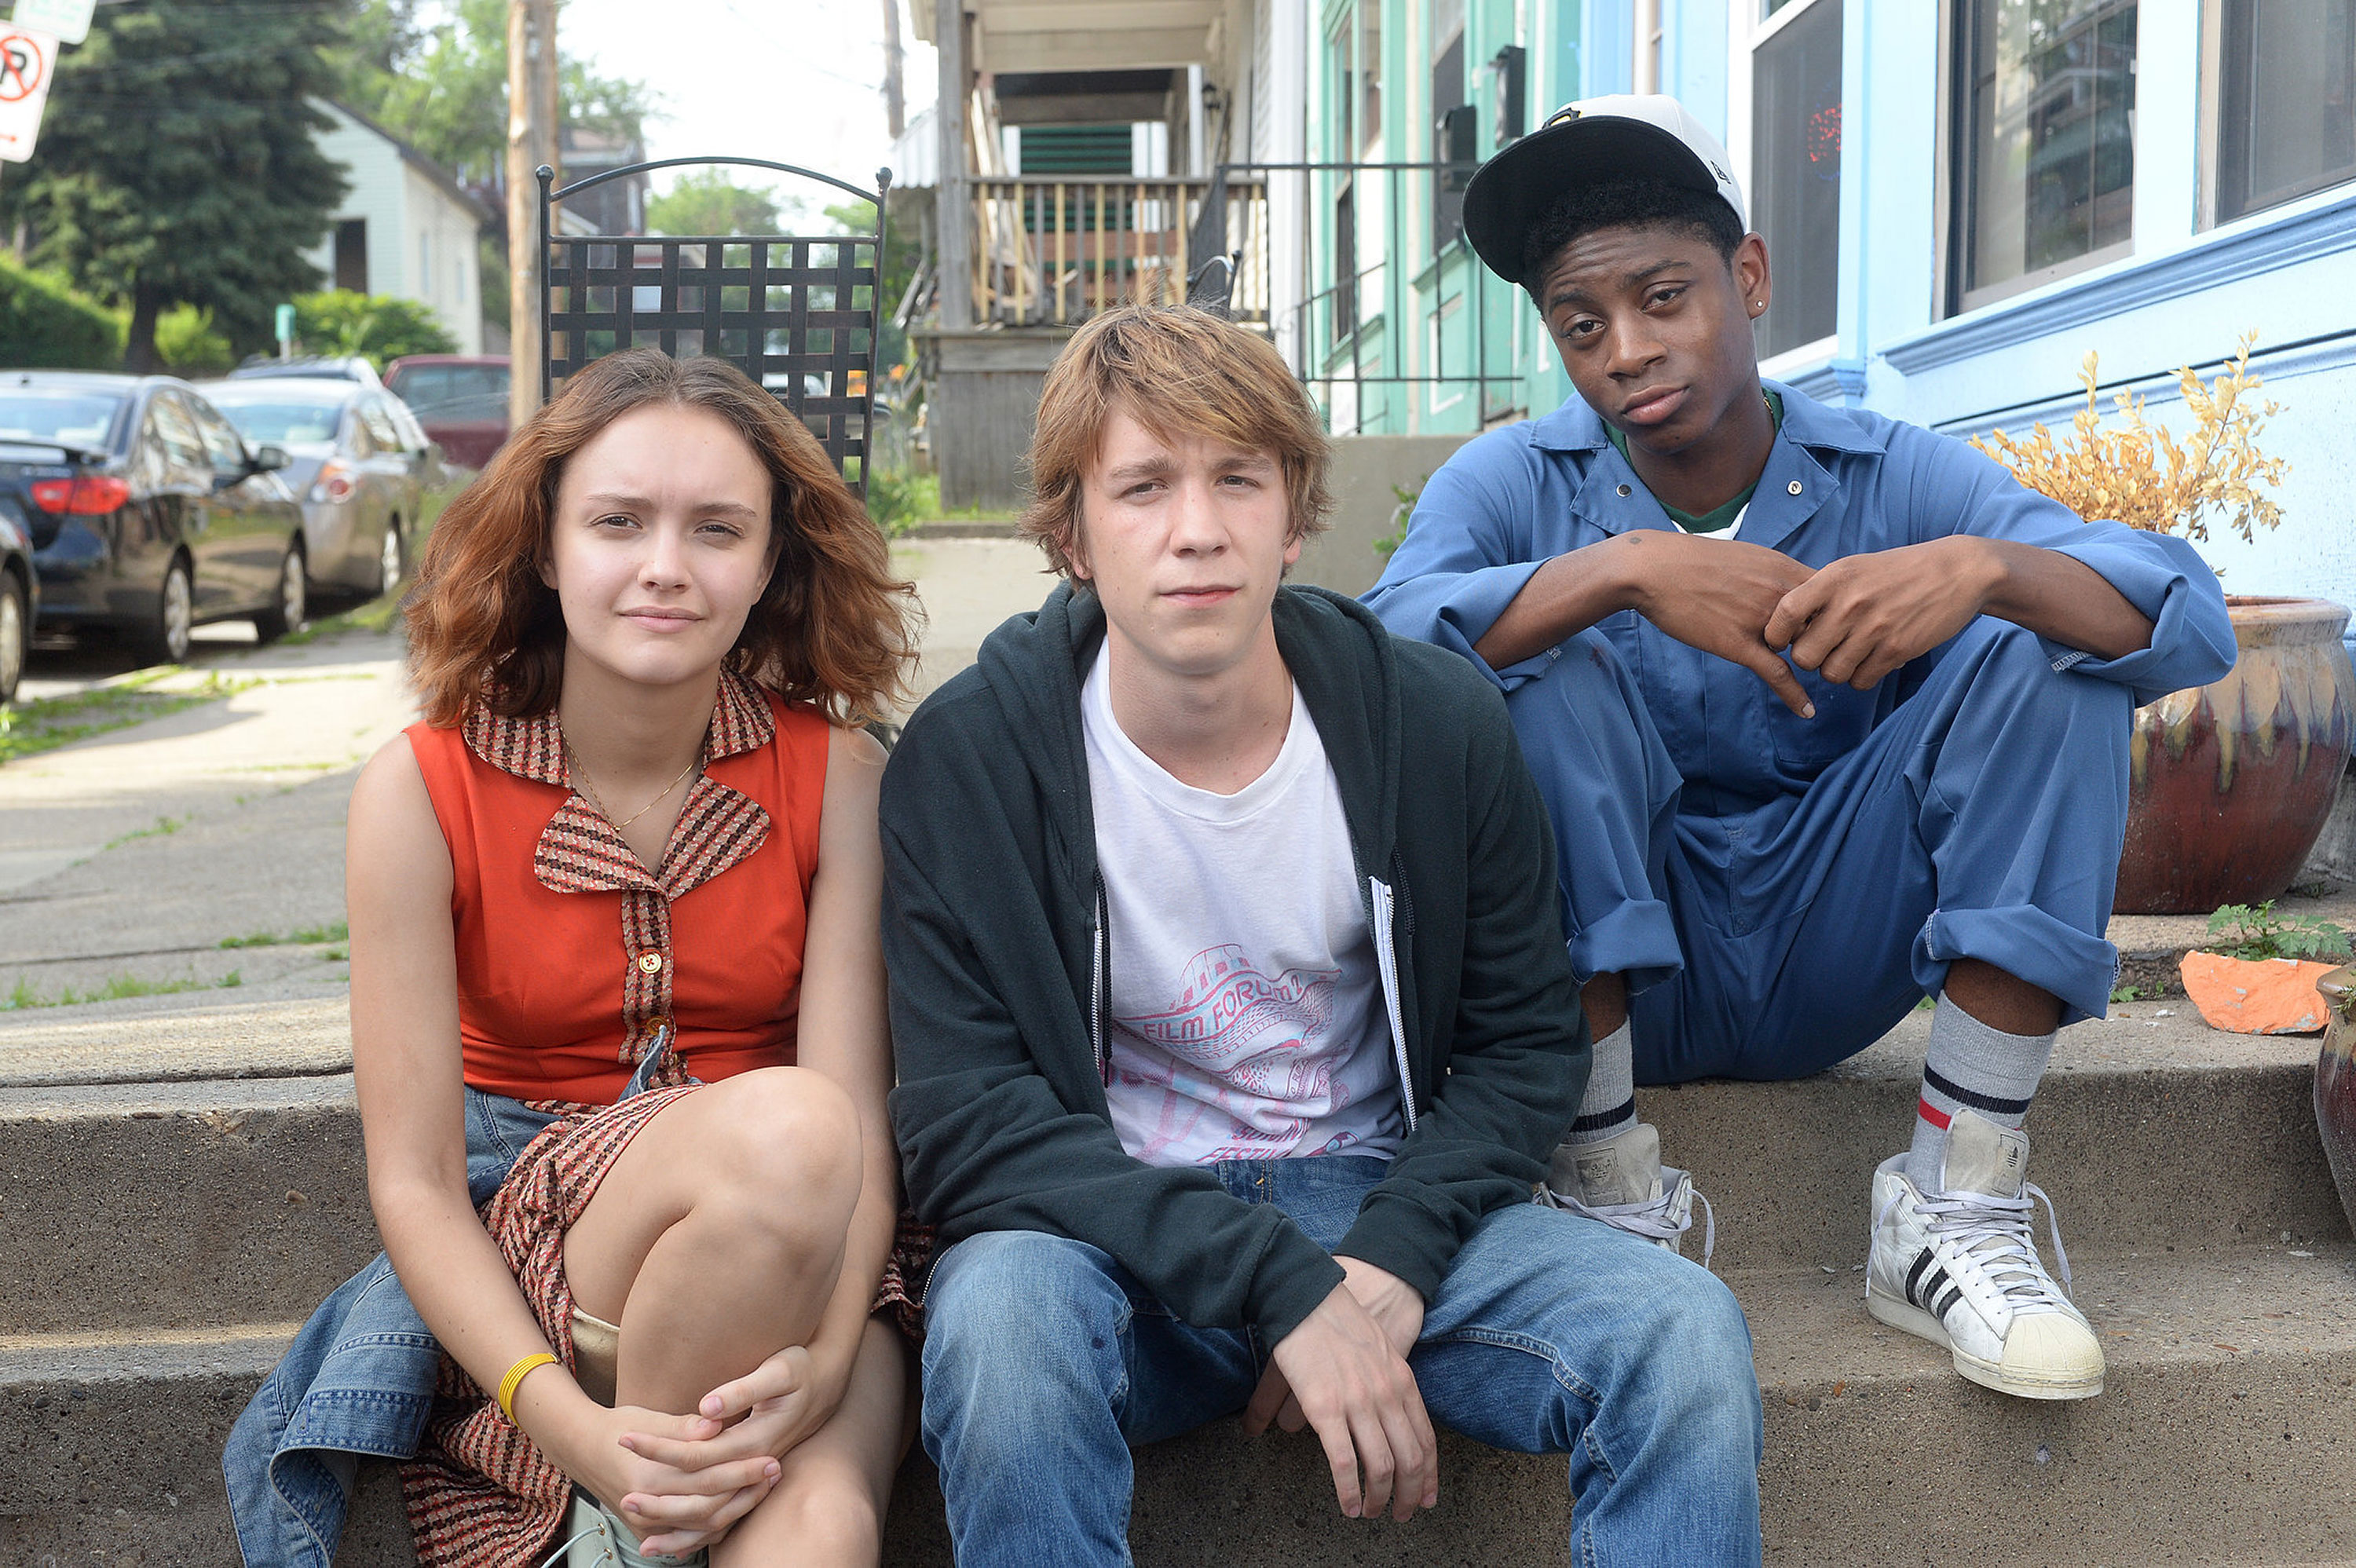 Olivia Cooke, Thomas Mann, and RJ Cyler star in this story about coming to terms with oneself and finding one's place in the world.